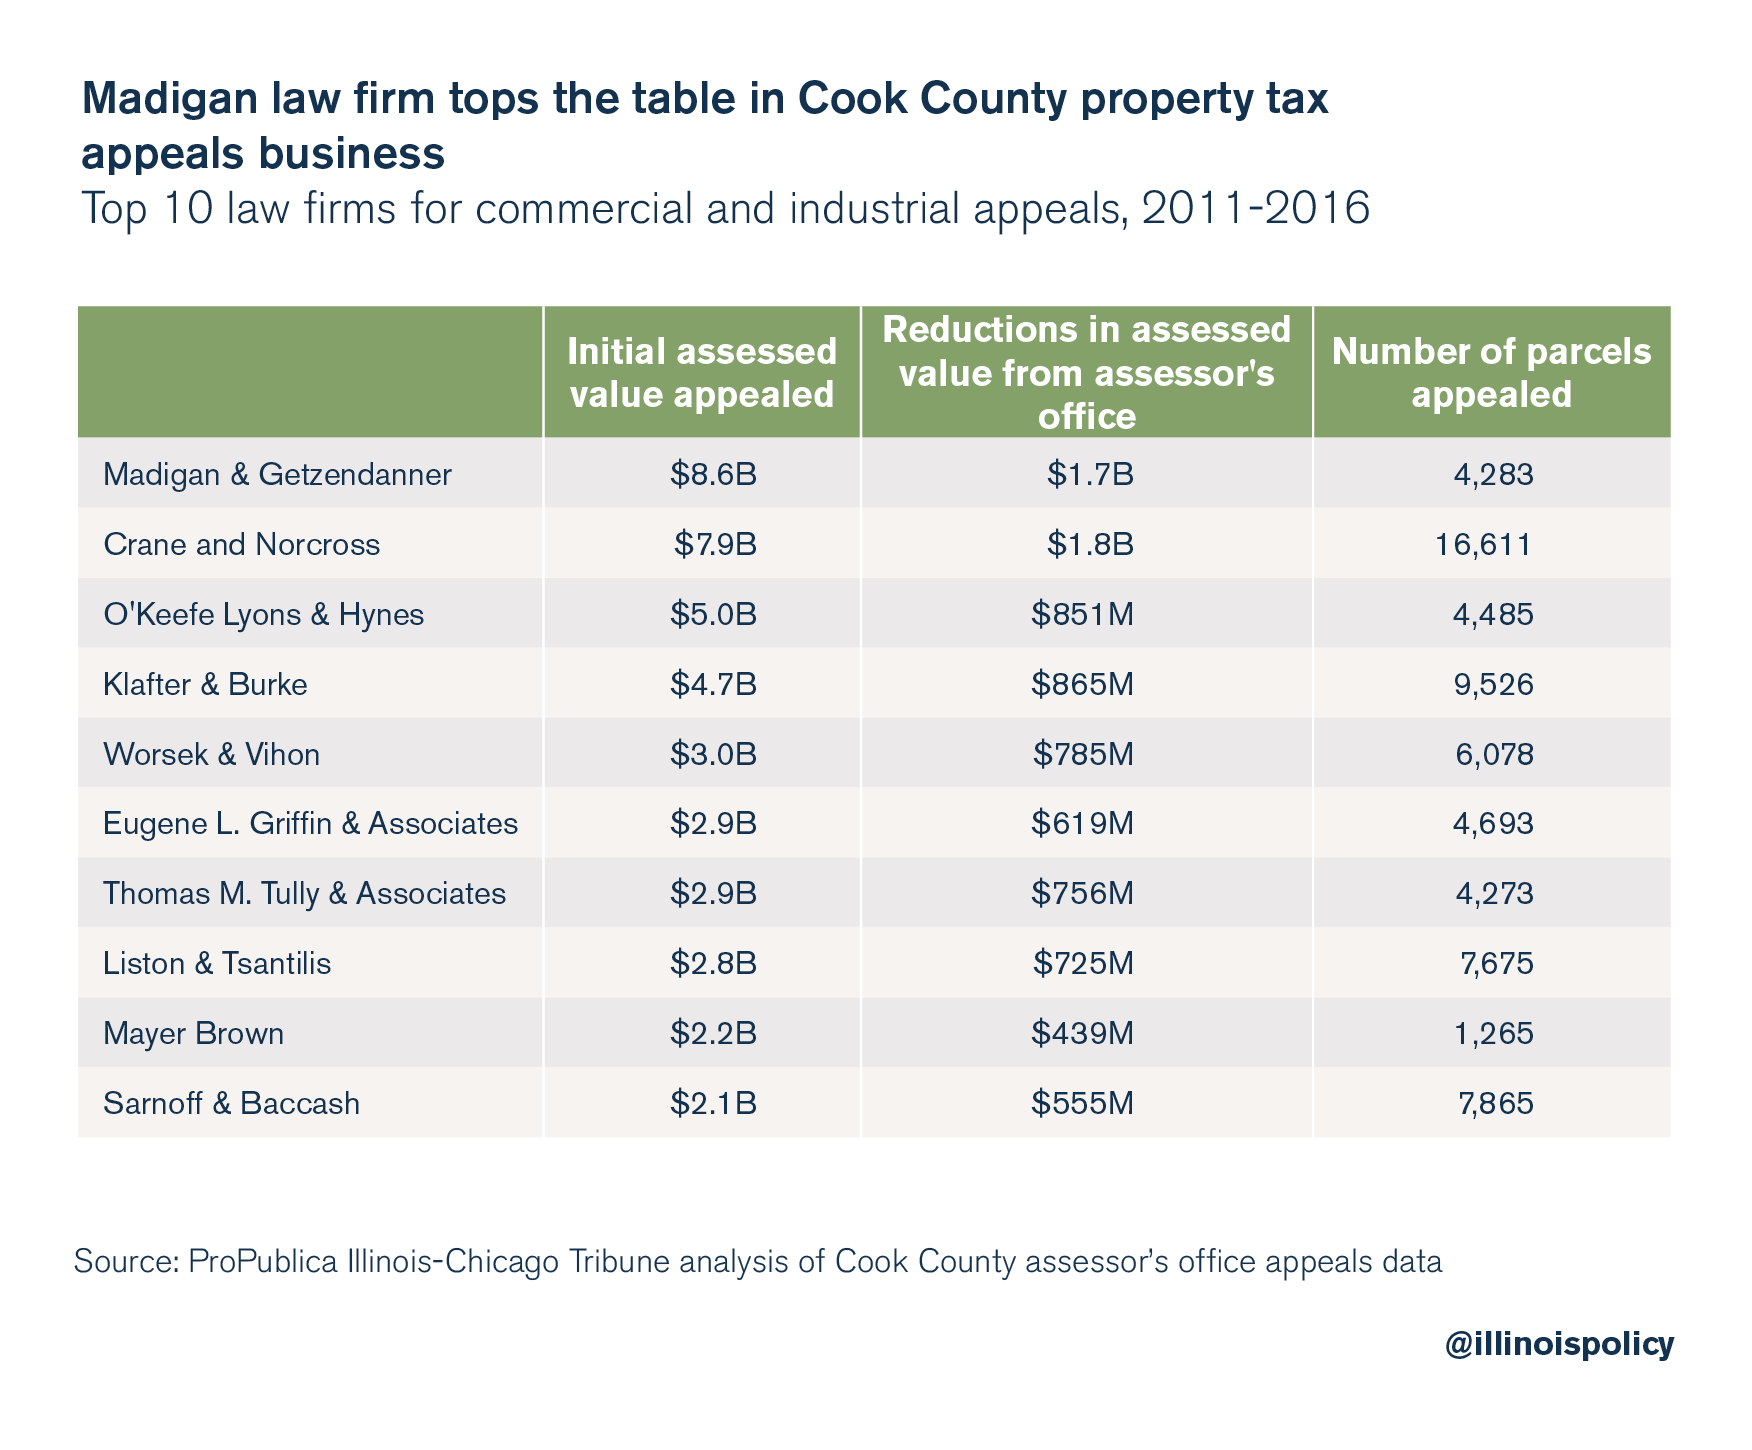 Madigan law firm tops the table in Cook County property tax appeals business